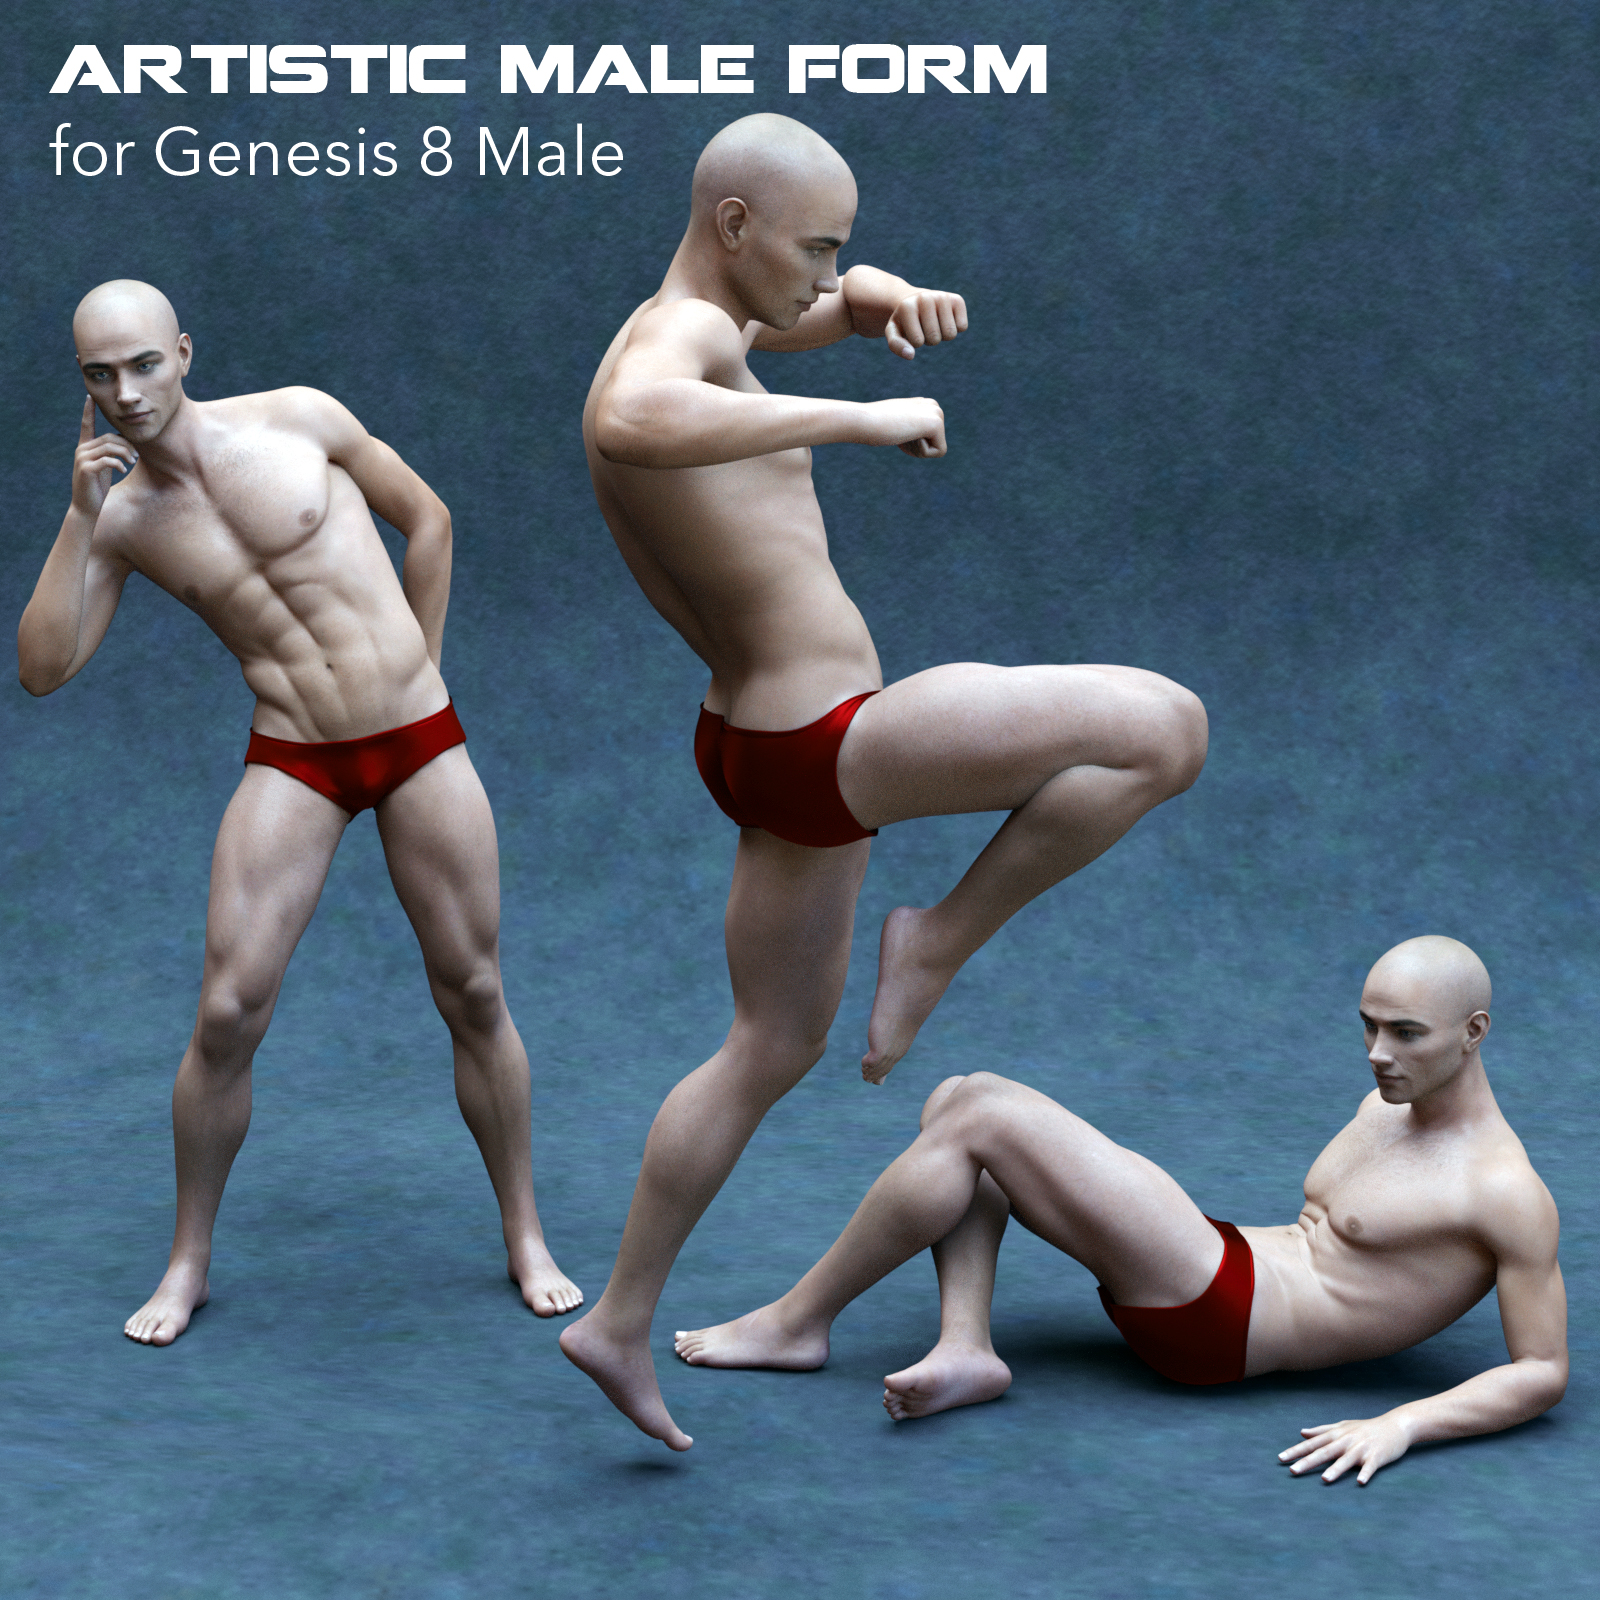 Artistic Male Form for Genesis 8 Male by P7ArtJ5